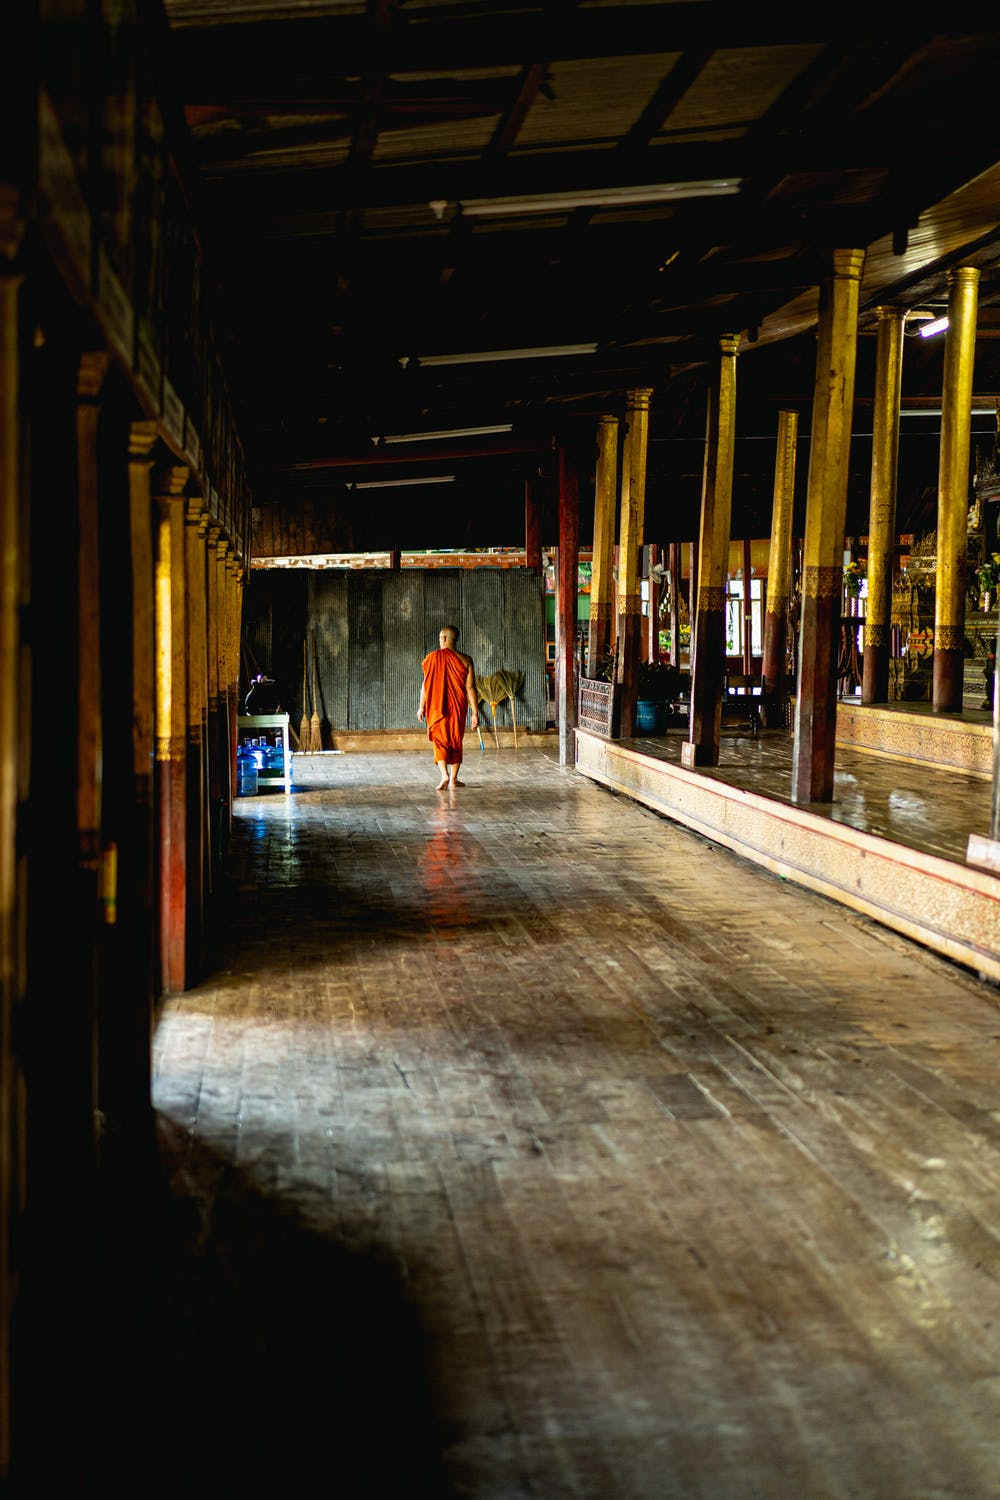 Buddhist monk in robes walking down a long hallway at Jumping Cat Monastery in Inle Lake Myanmar